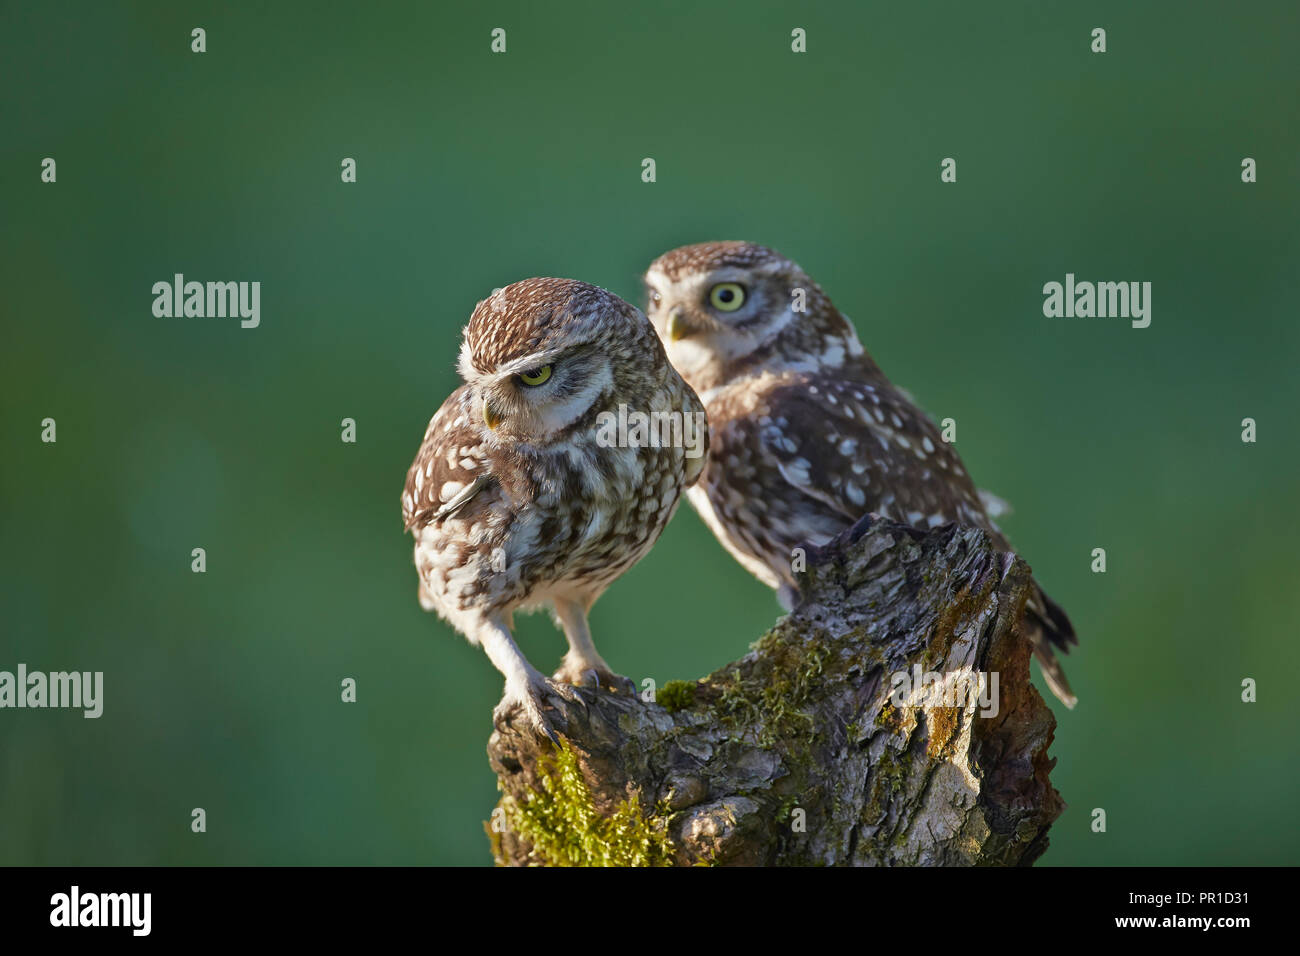 Two a pair of Little Owls, Athene noctua photographed at the Les Gibbon Little Owl photography hide, East Yorkshire. - Stock Image